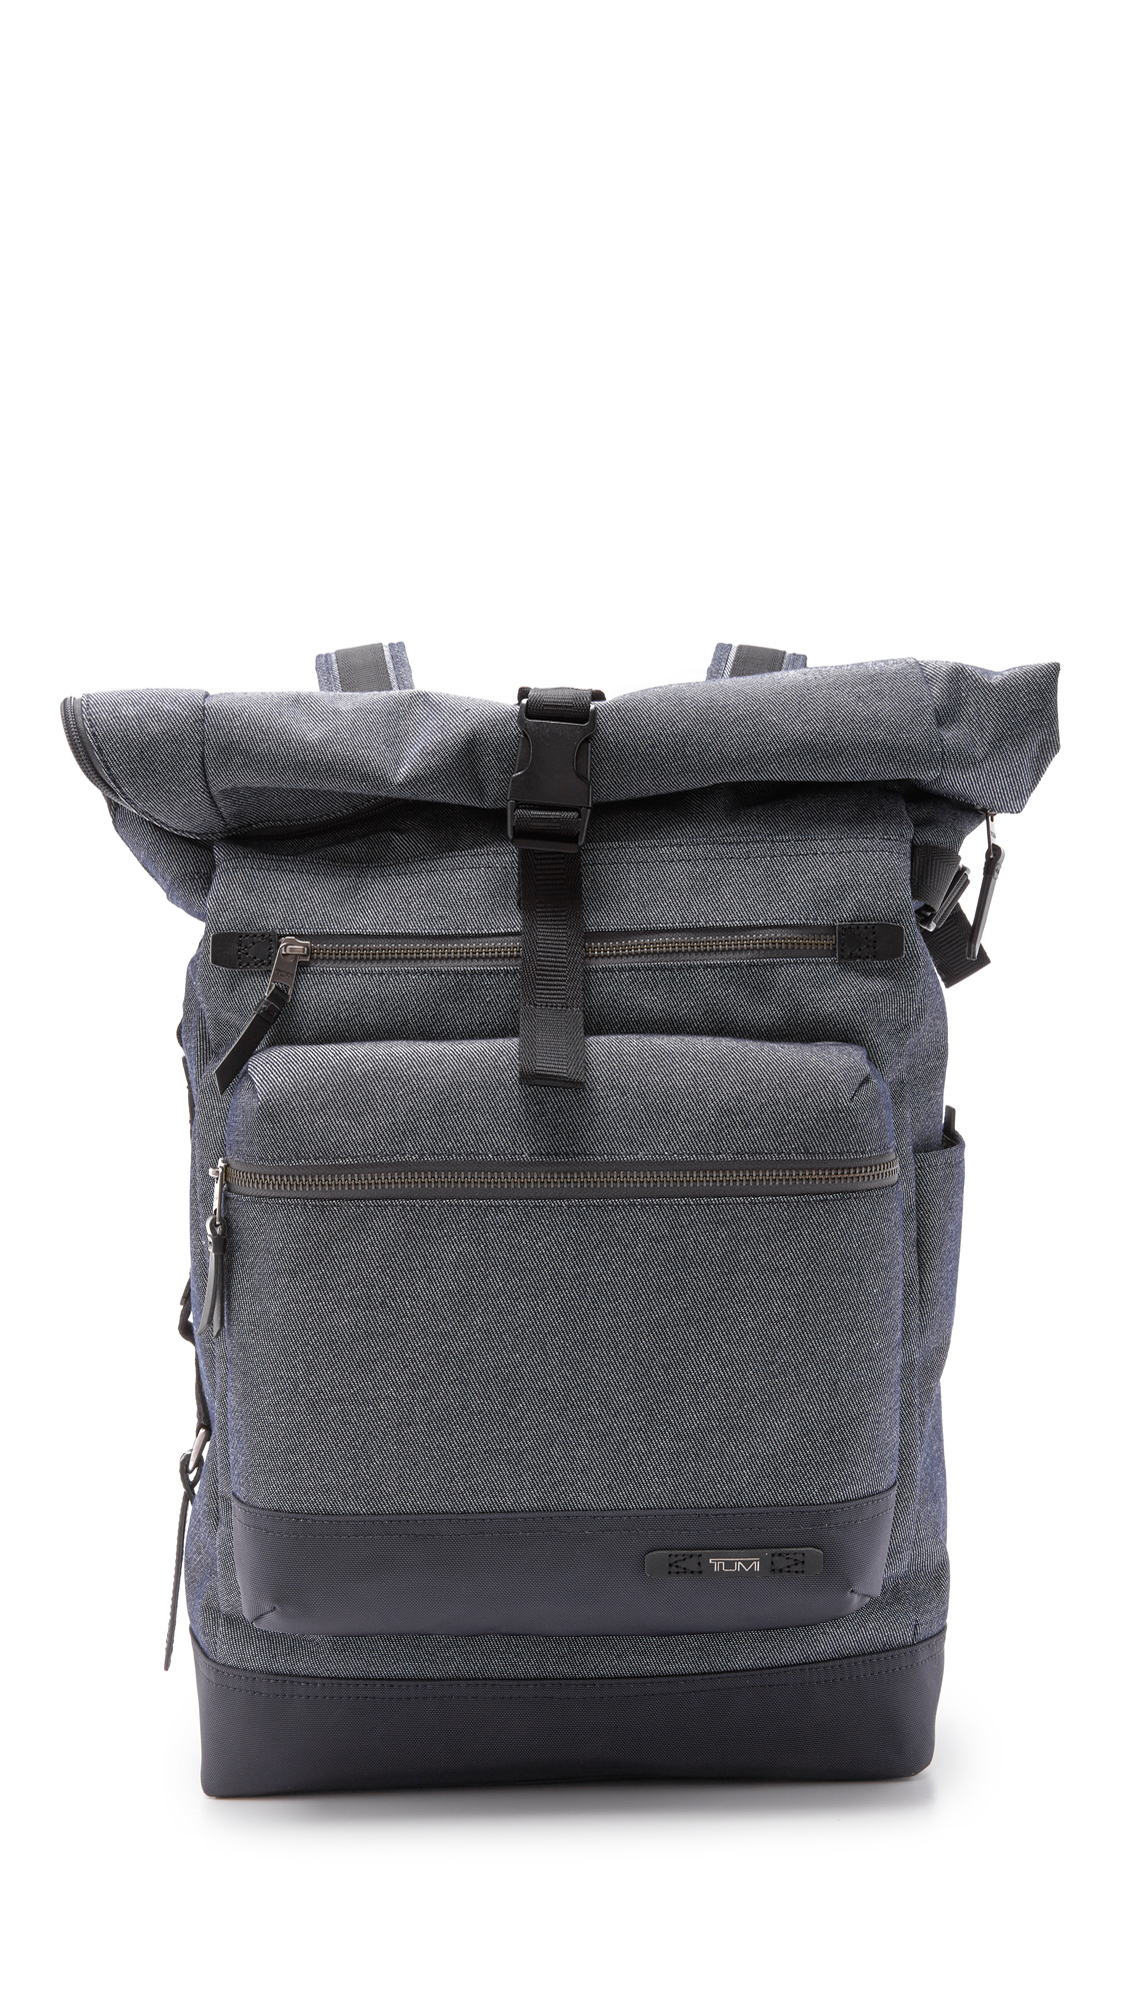 Tumi Dalston Ridley Roll Top Backpack In Gray For Men Lyst